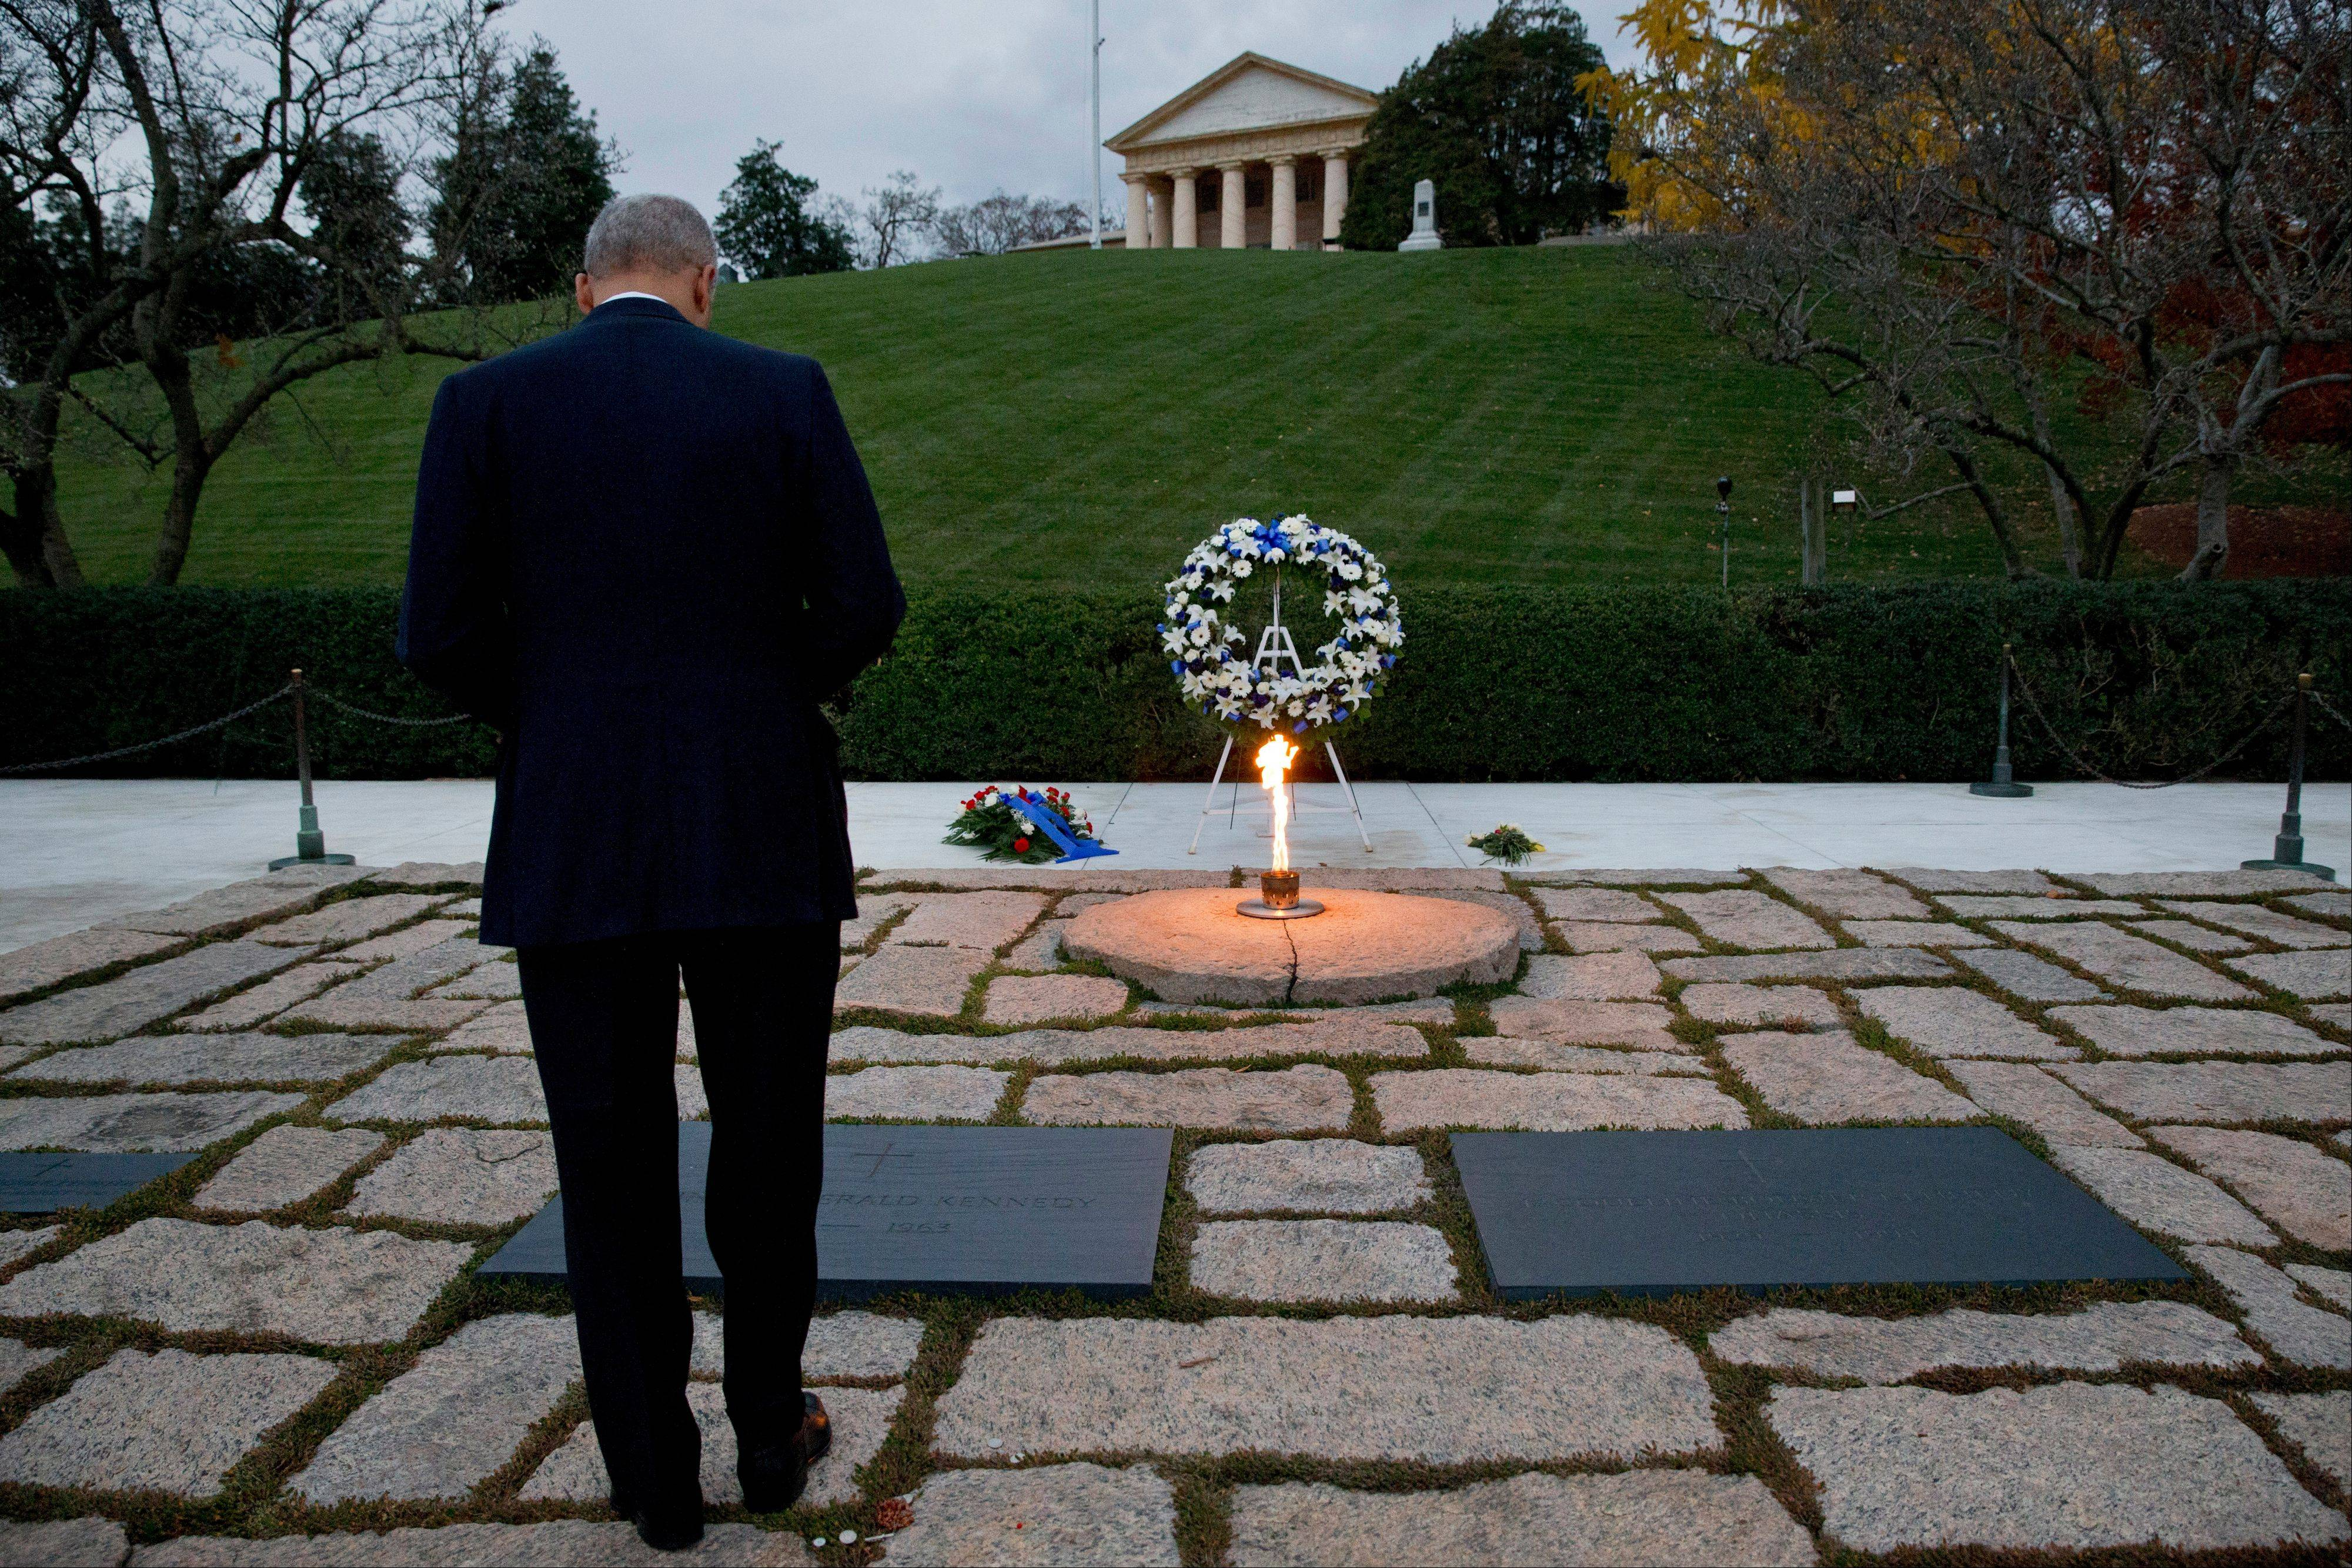 Attorney General Eric Holder pays his respects at the grave of John F. Kennedy at Arlington National Cemetery on Friday, Nov. 22, 2013, on the 50th anniversary of Kennedy�s death. Holder has been visiting the grave since his youth.